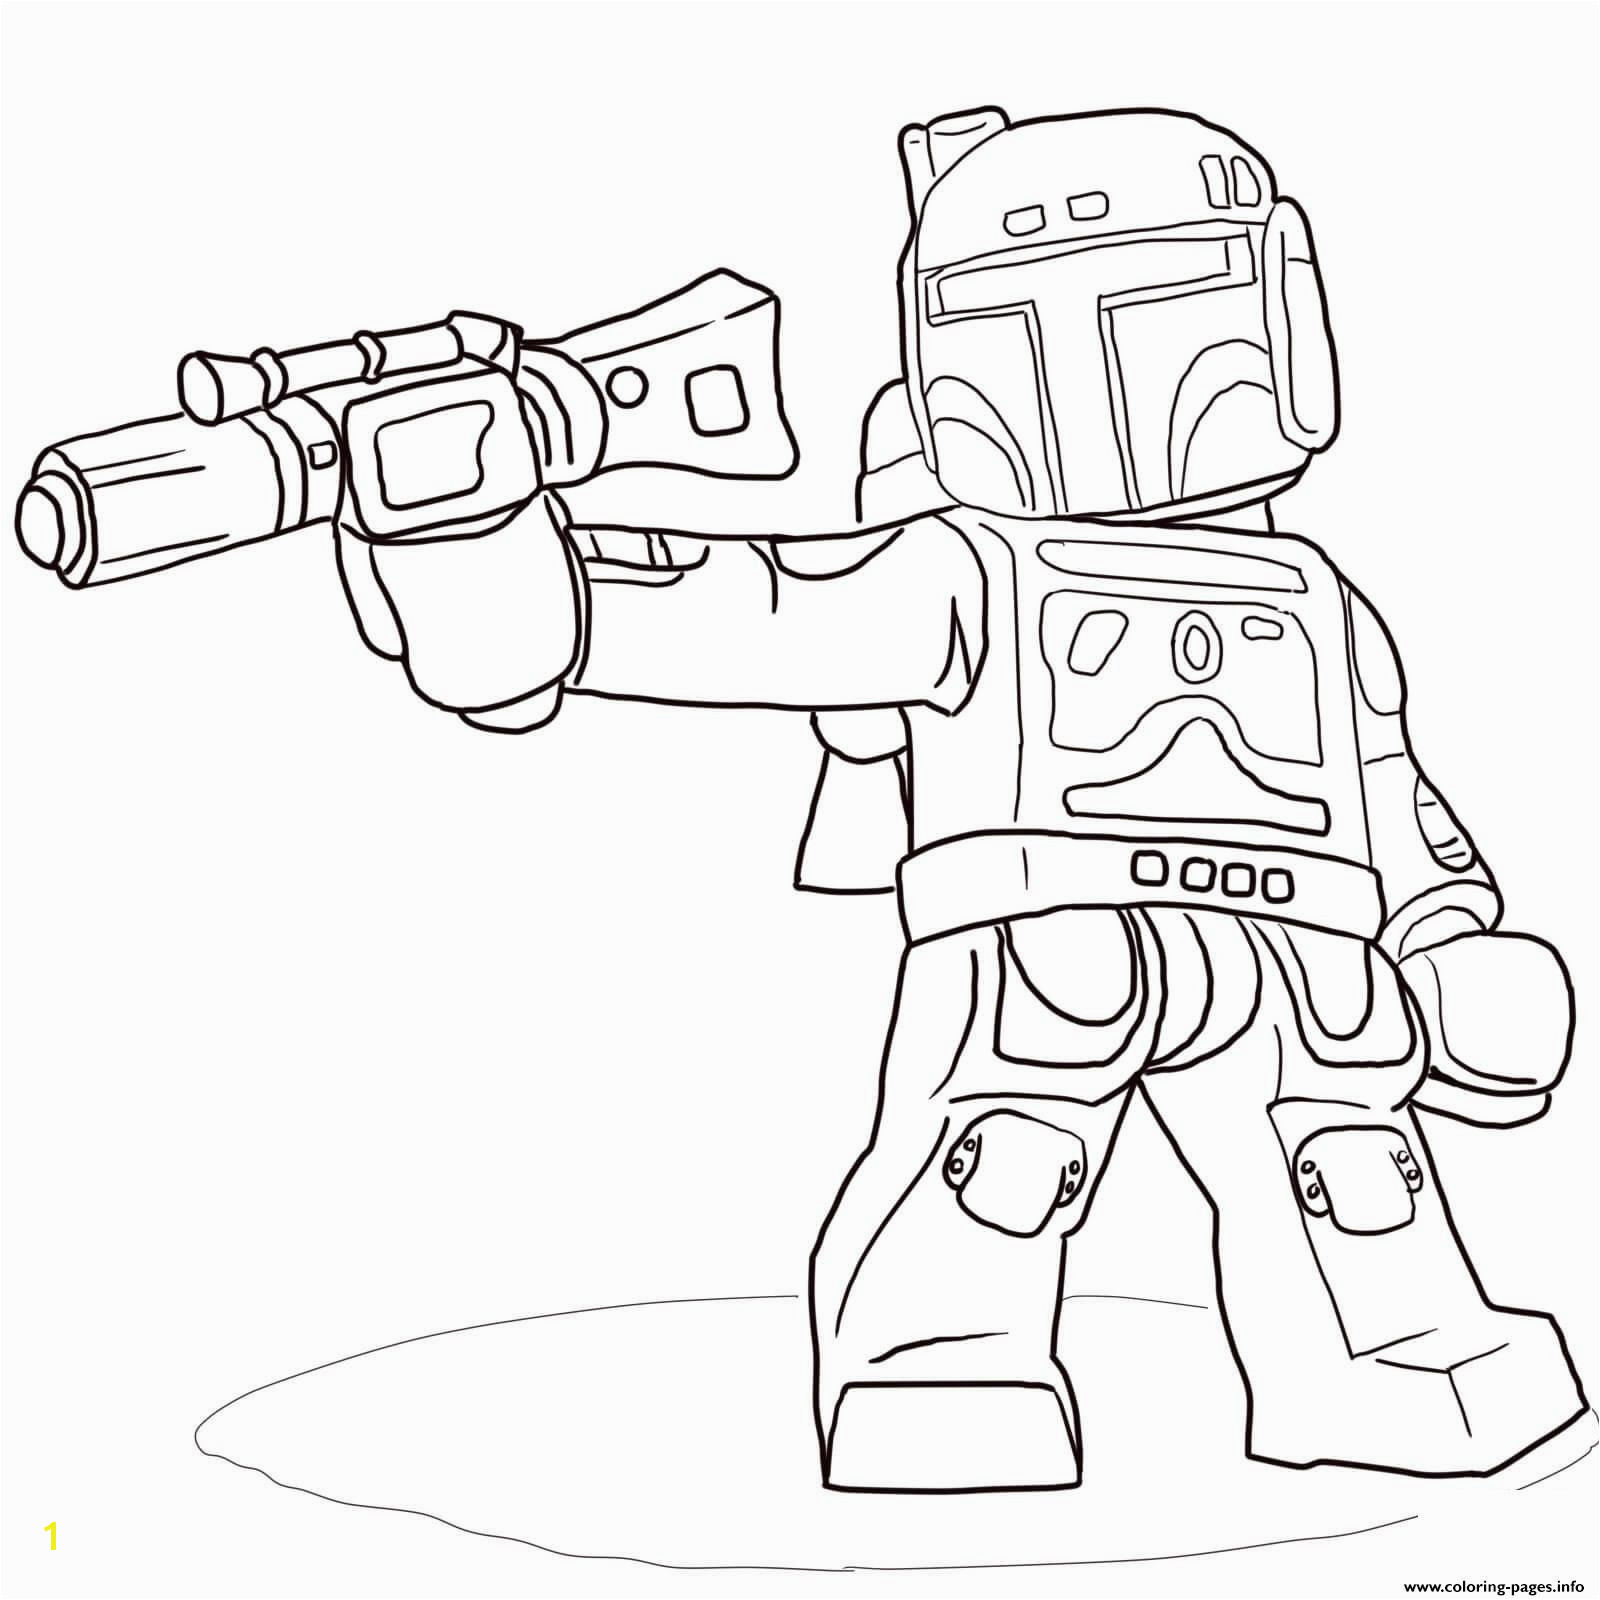 Lego Star Wars Boba Fett Coloring Pages Lego Star Wars Boba Fett Coloring Pages Printable Collection Schön